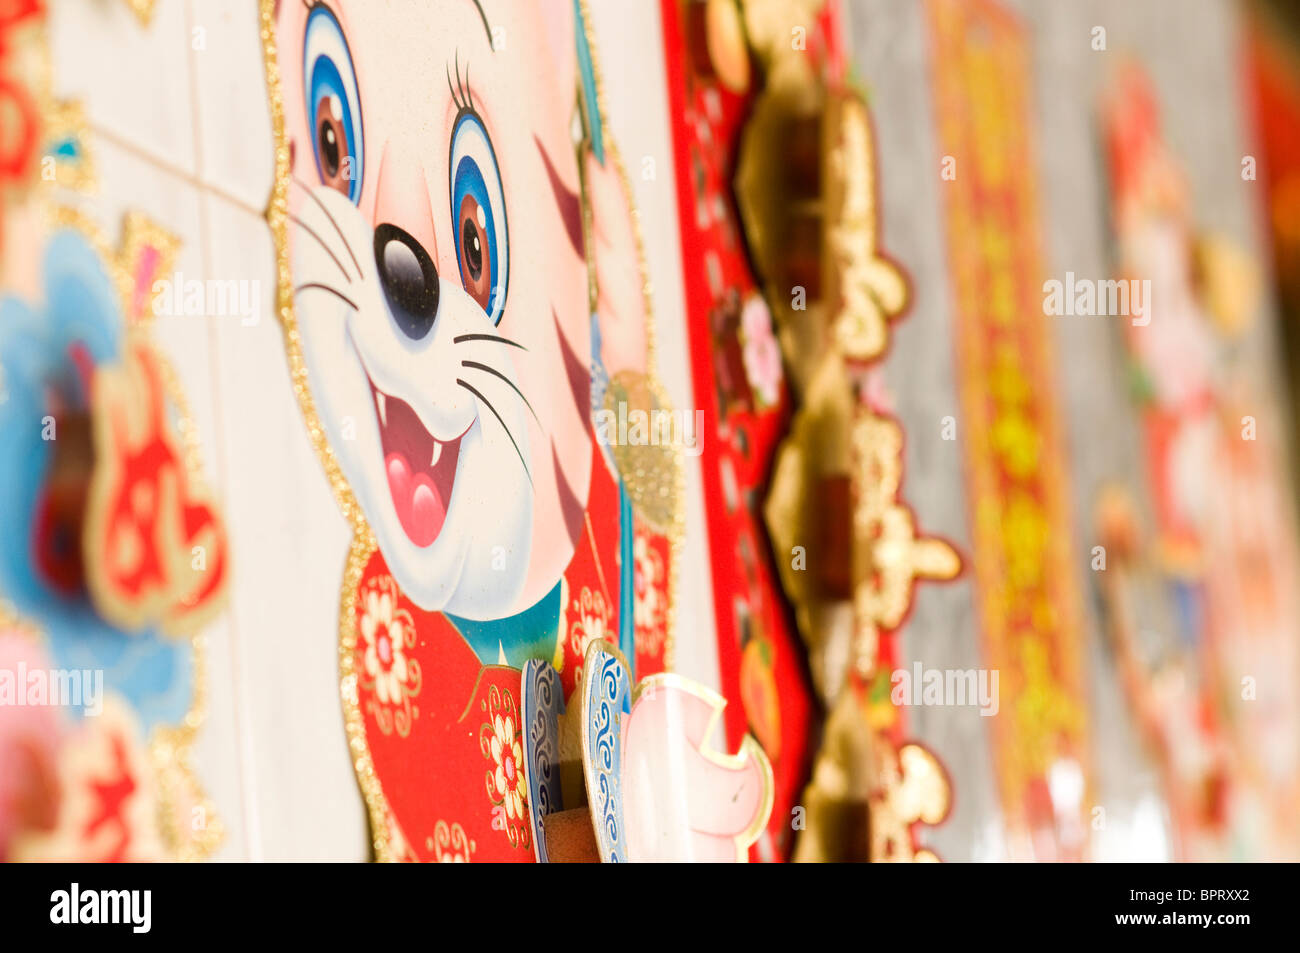 Chinese commercial art, Kompong Cham, Cambodia - Stock Image